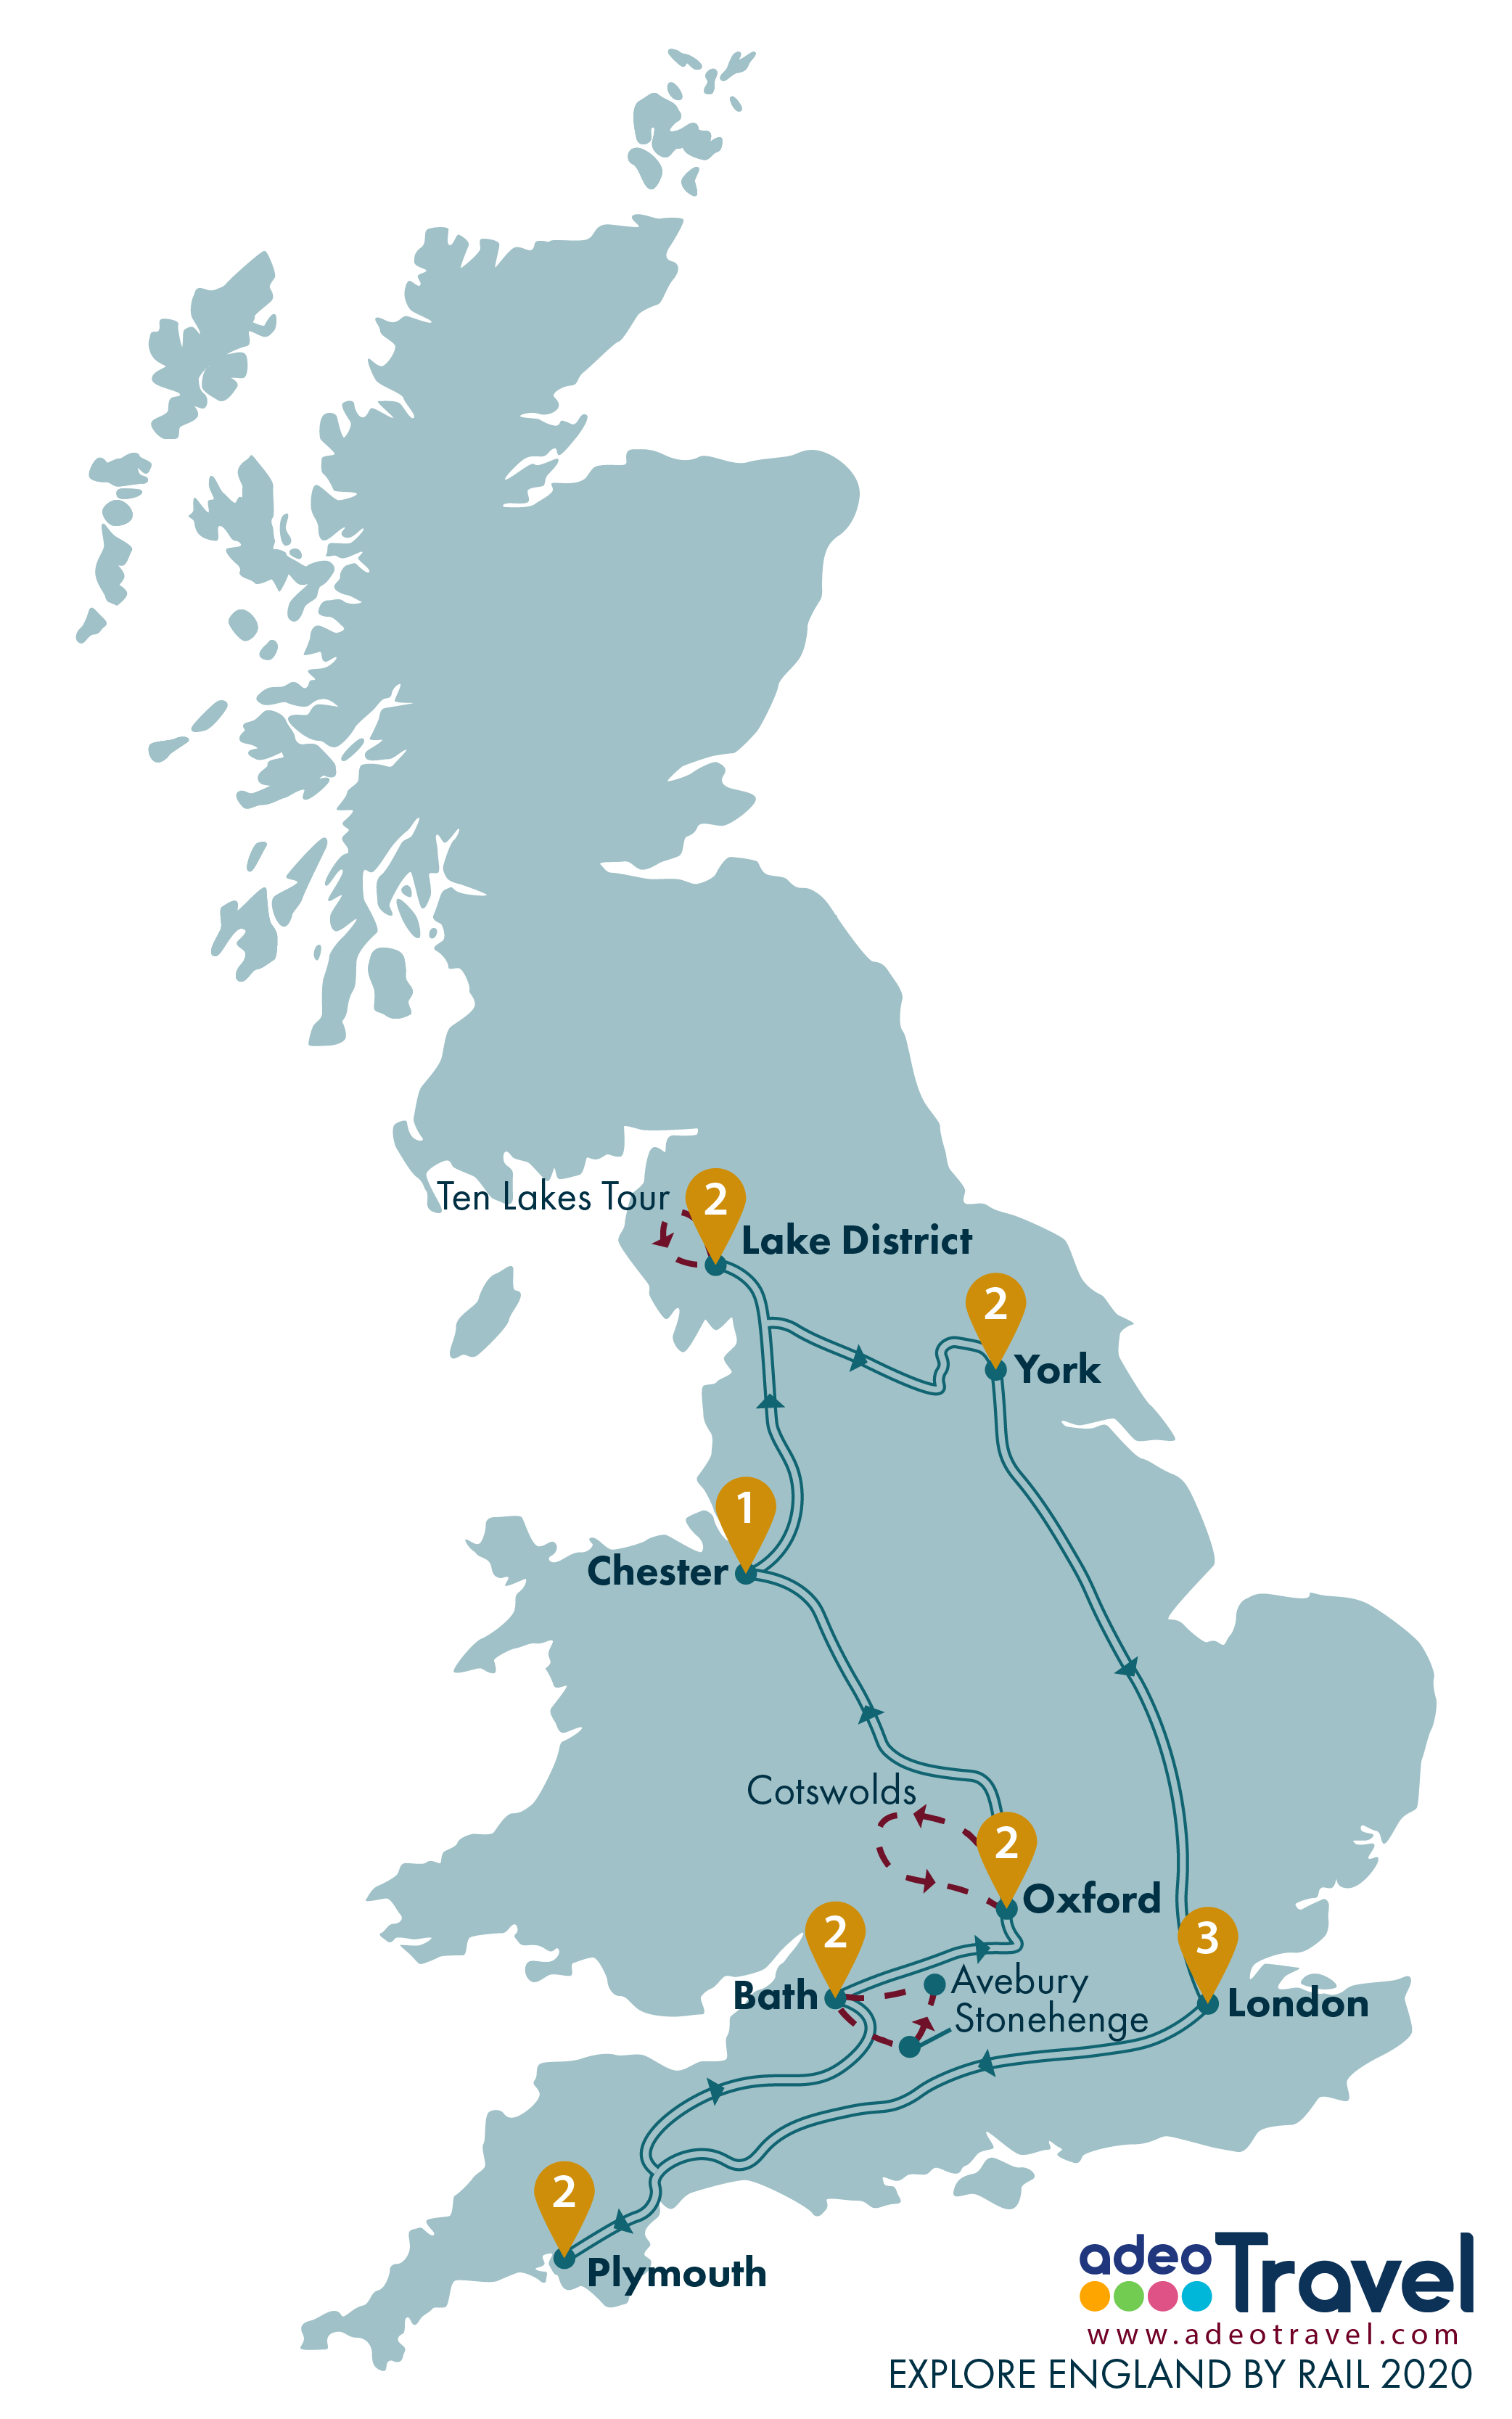 Map - Explore England by Rail 2020 + day tours